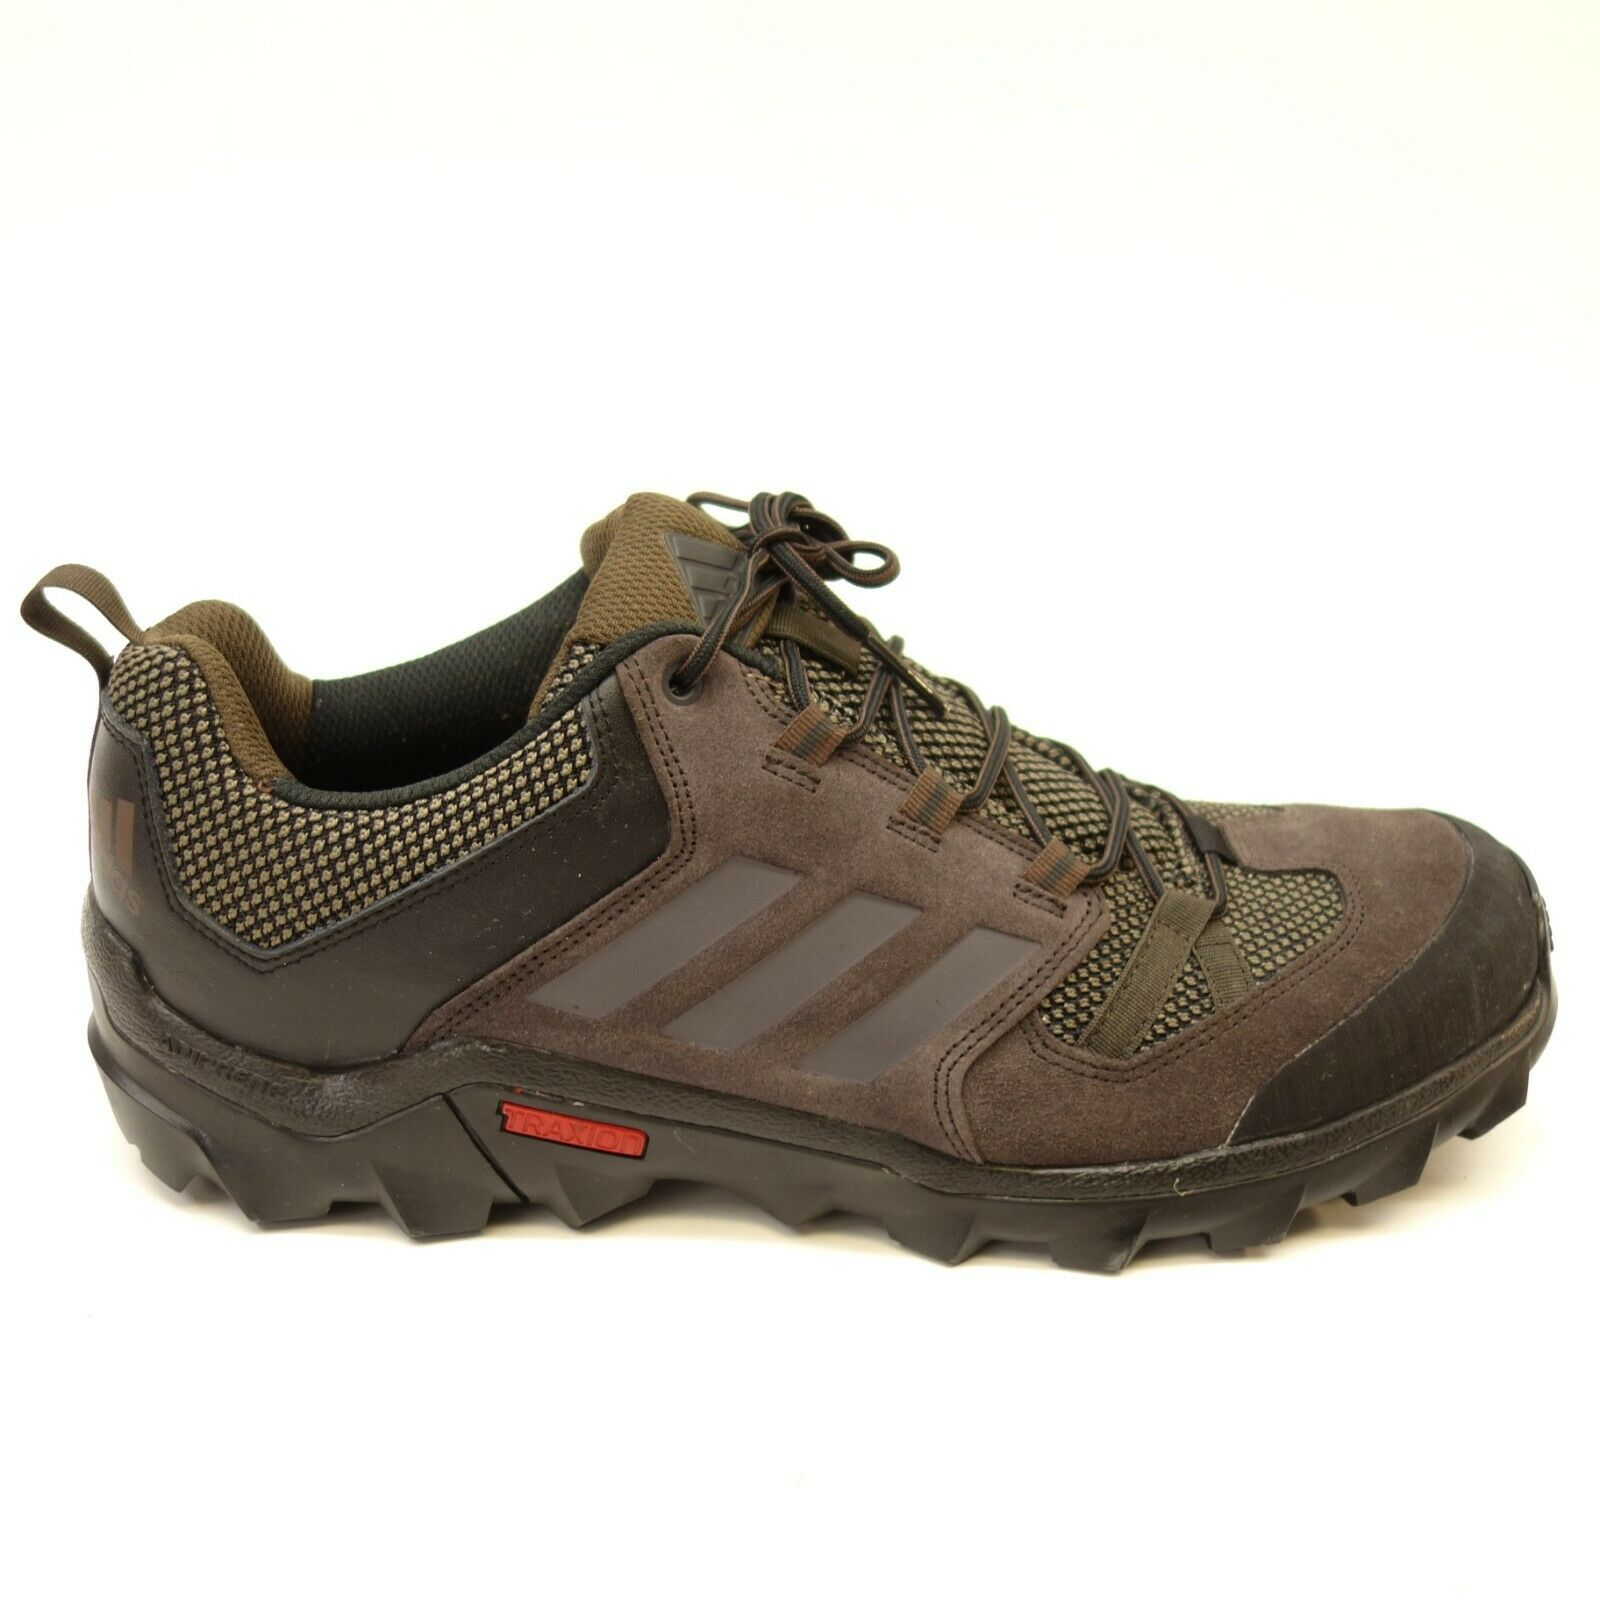 New Adidas Outdoor Mens Caprock Hiking Trail Running Earth Tone shoes Size 12